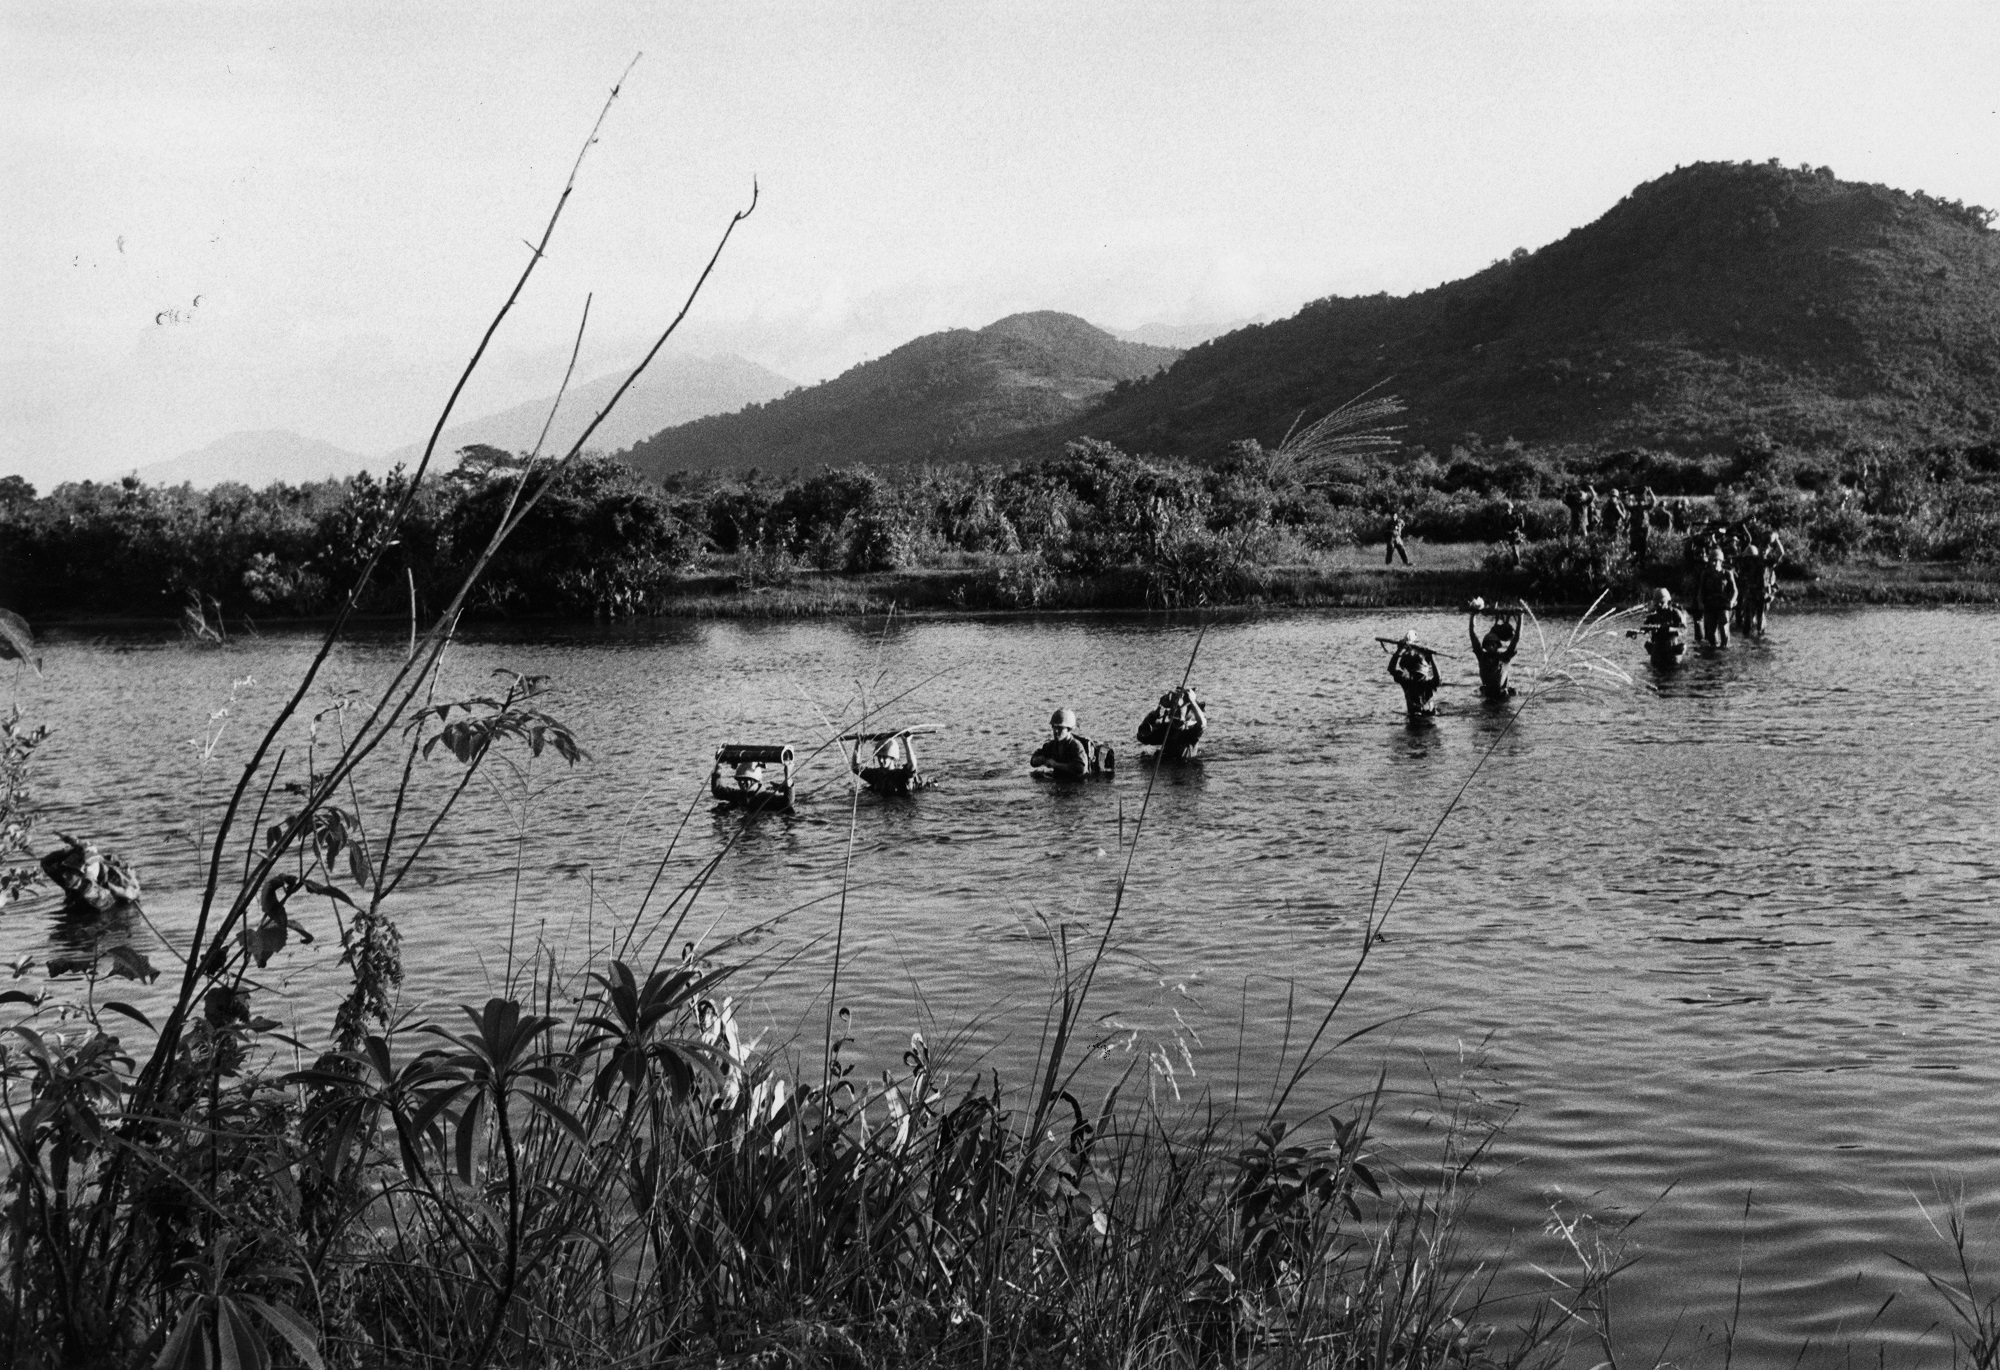 Marines wade across a river near Da Nang, ca. 1965. (Wisconsin Historical Images 75425)